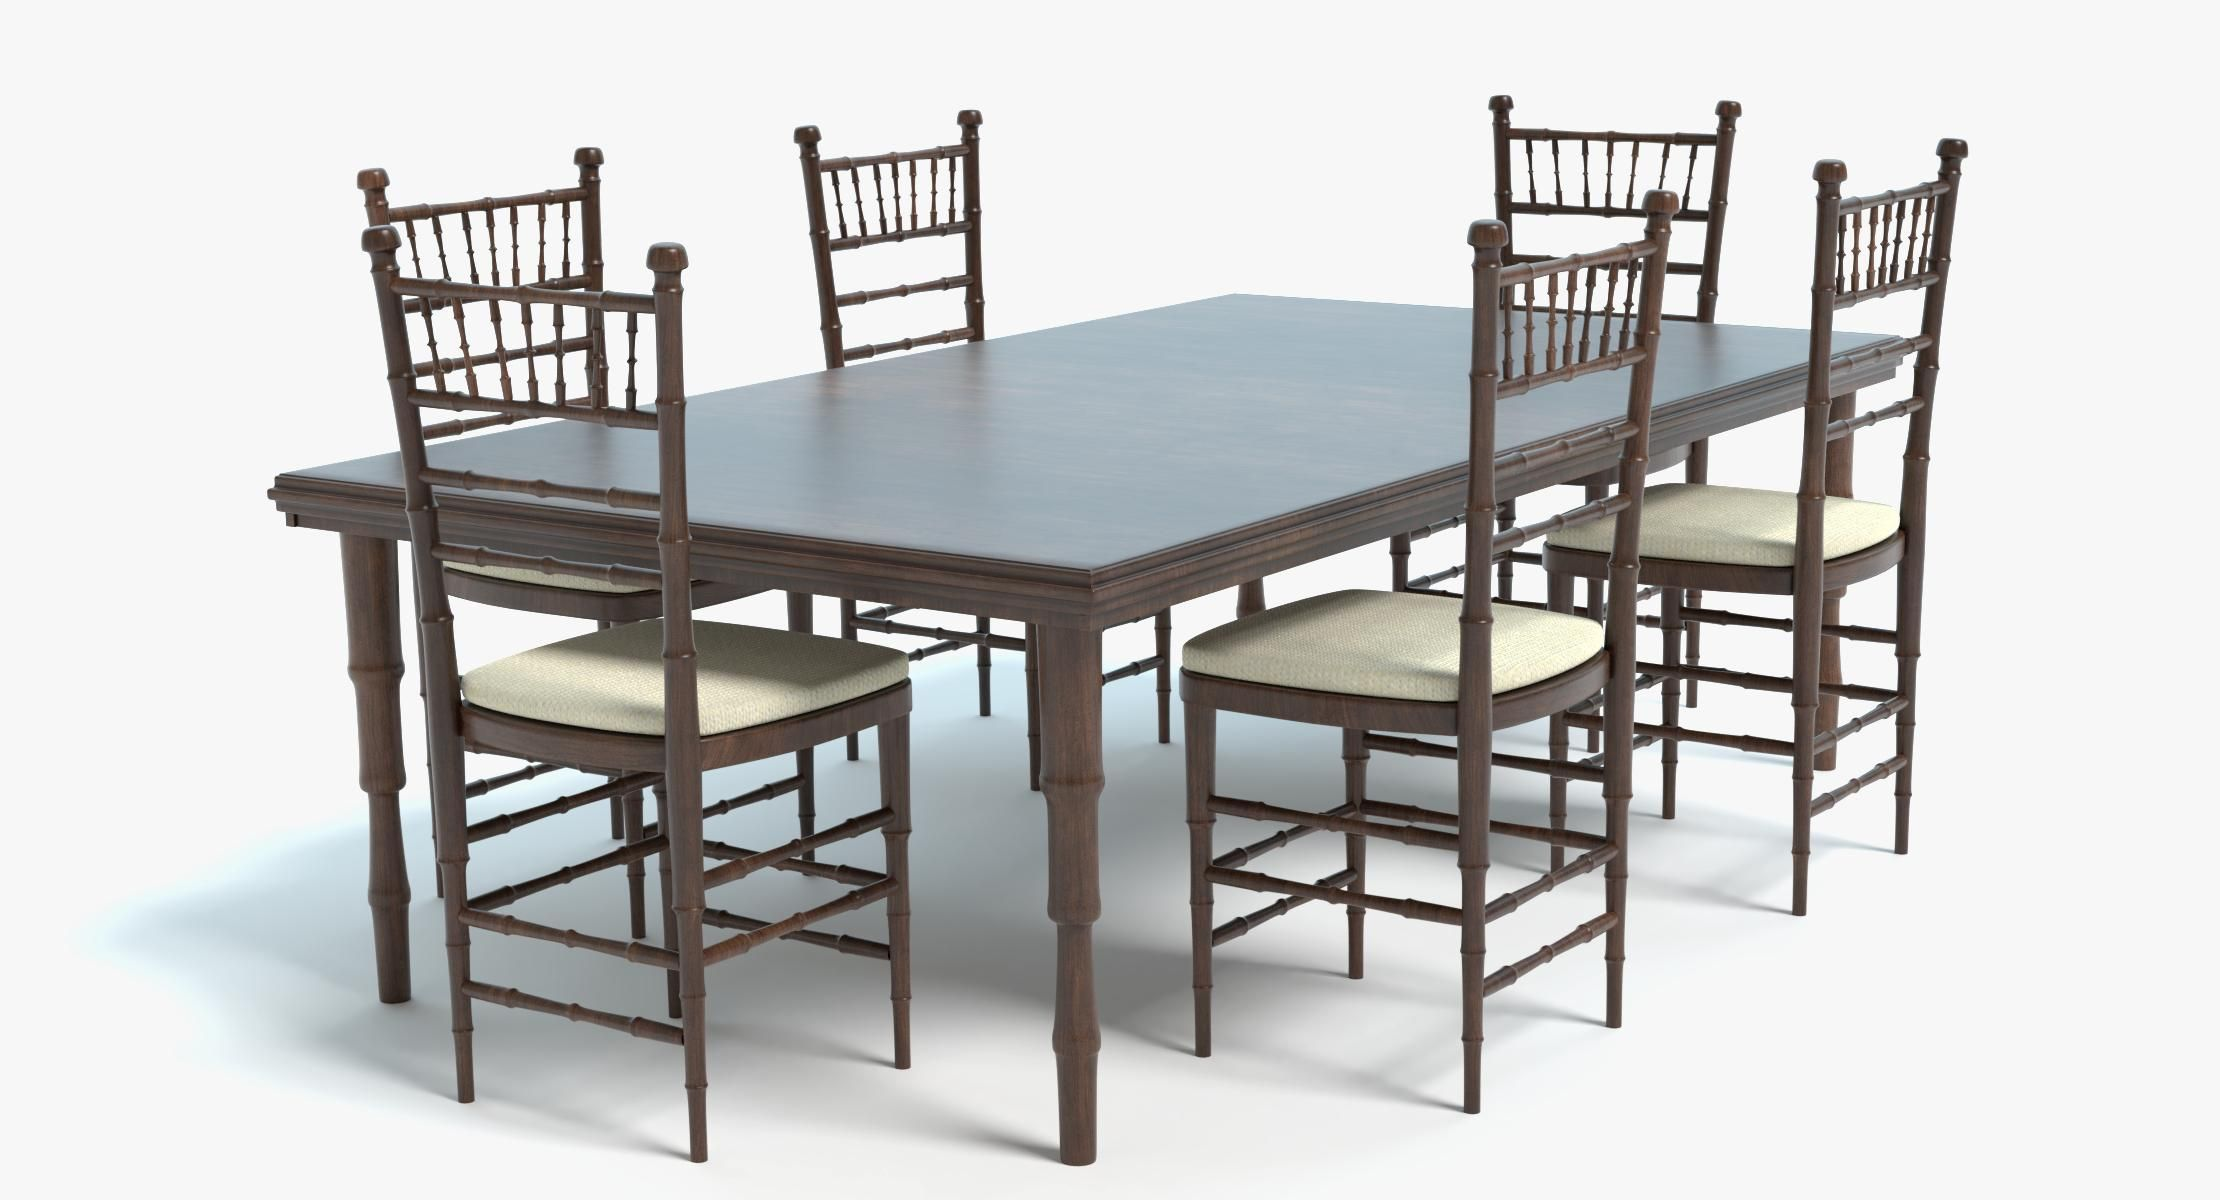 Dining Table 3d Model Ad Dining Table Model Dining Table Dining Table